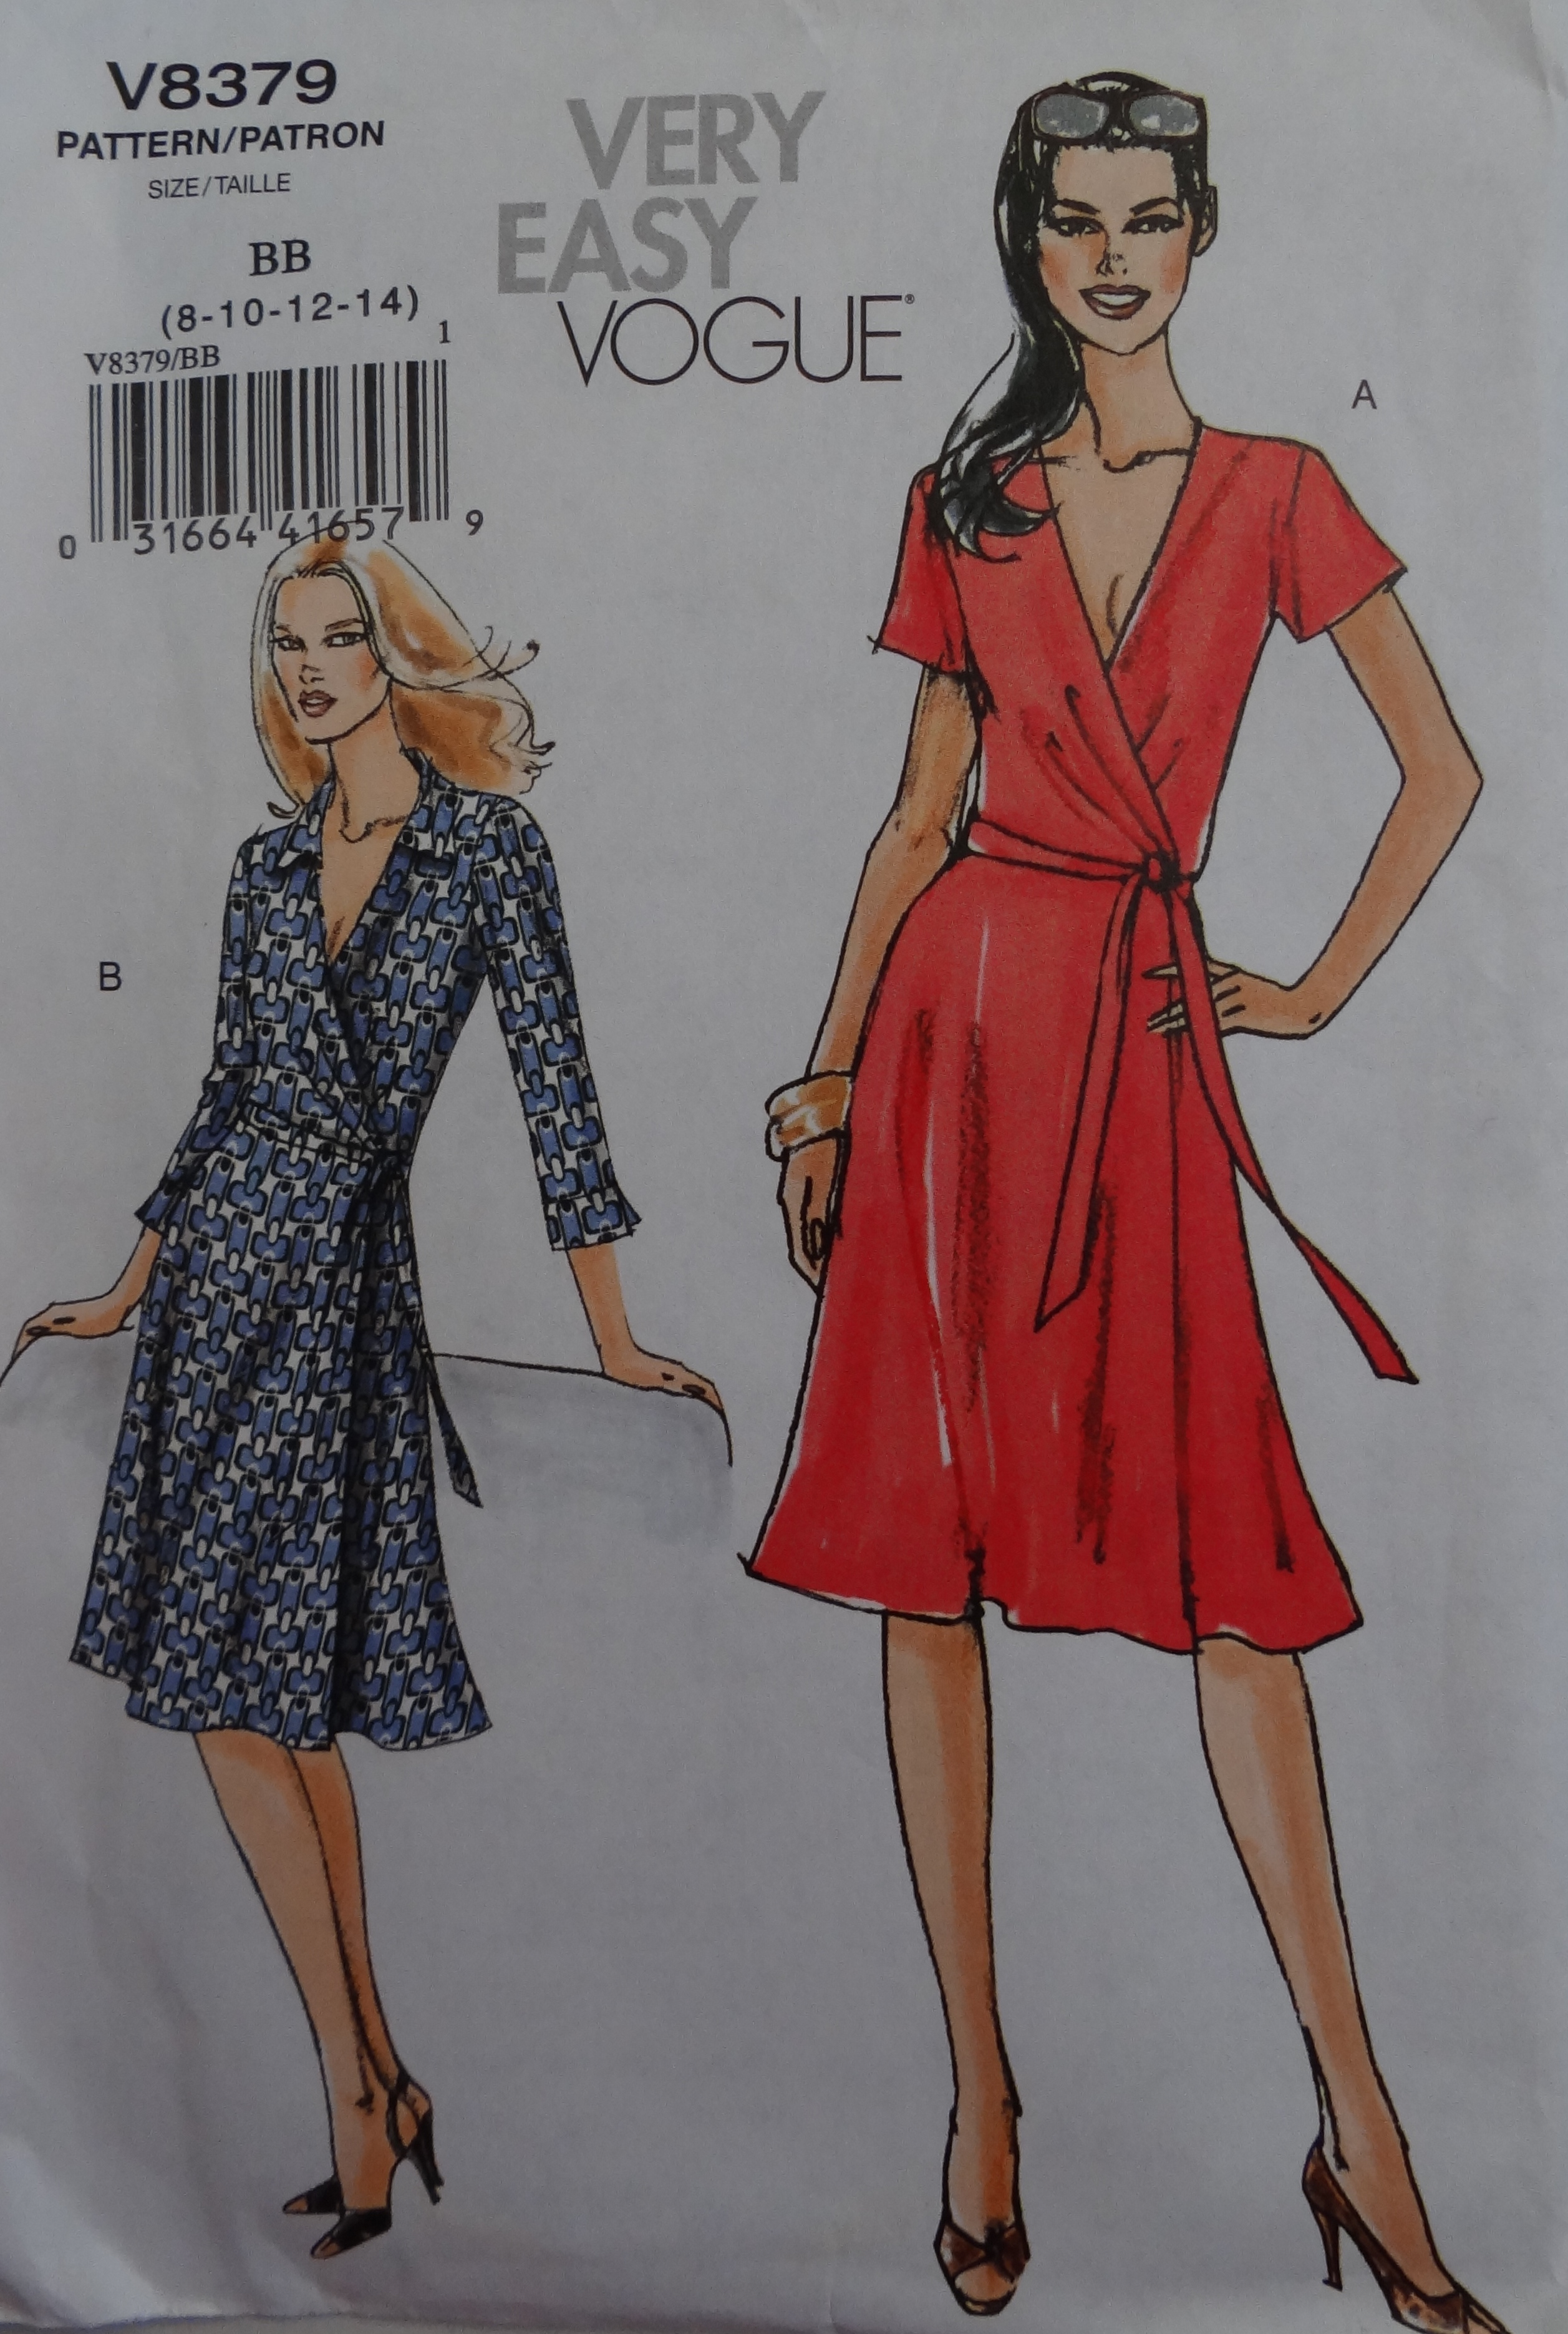 How to understand a sewing pattern envelope a beginners guide front of first dress pattern labelled very easy pattern jeuxipadfo Image collections